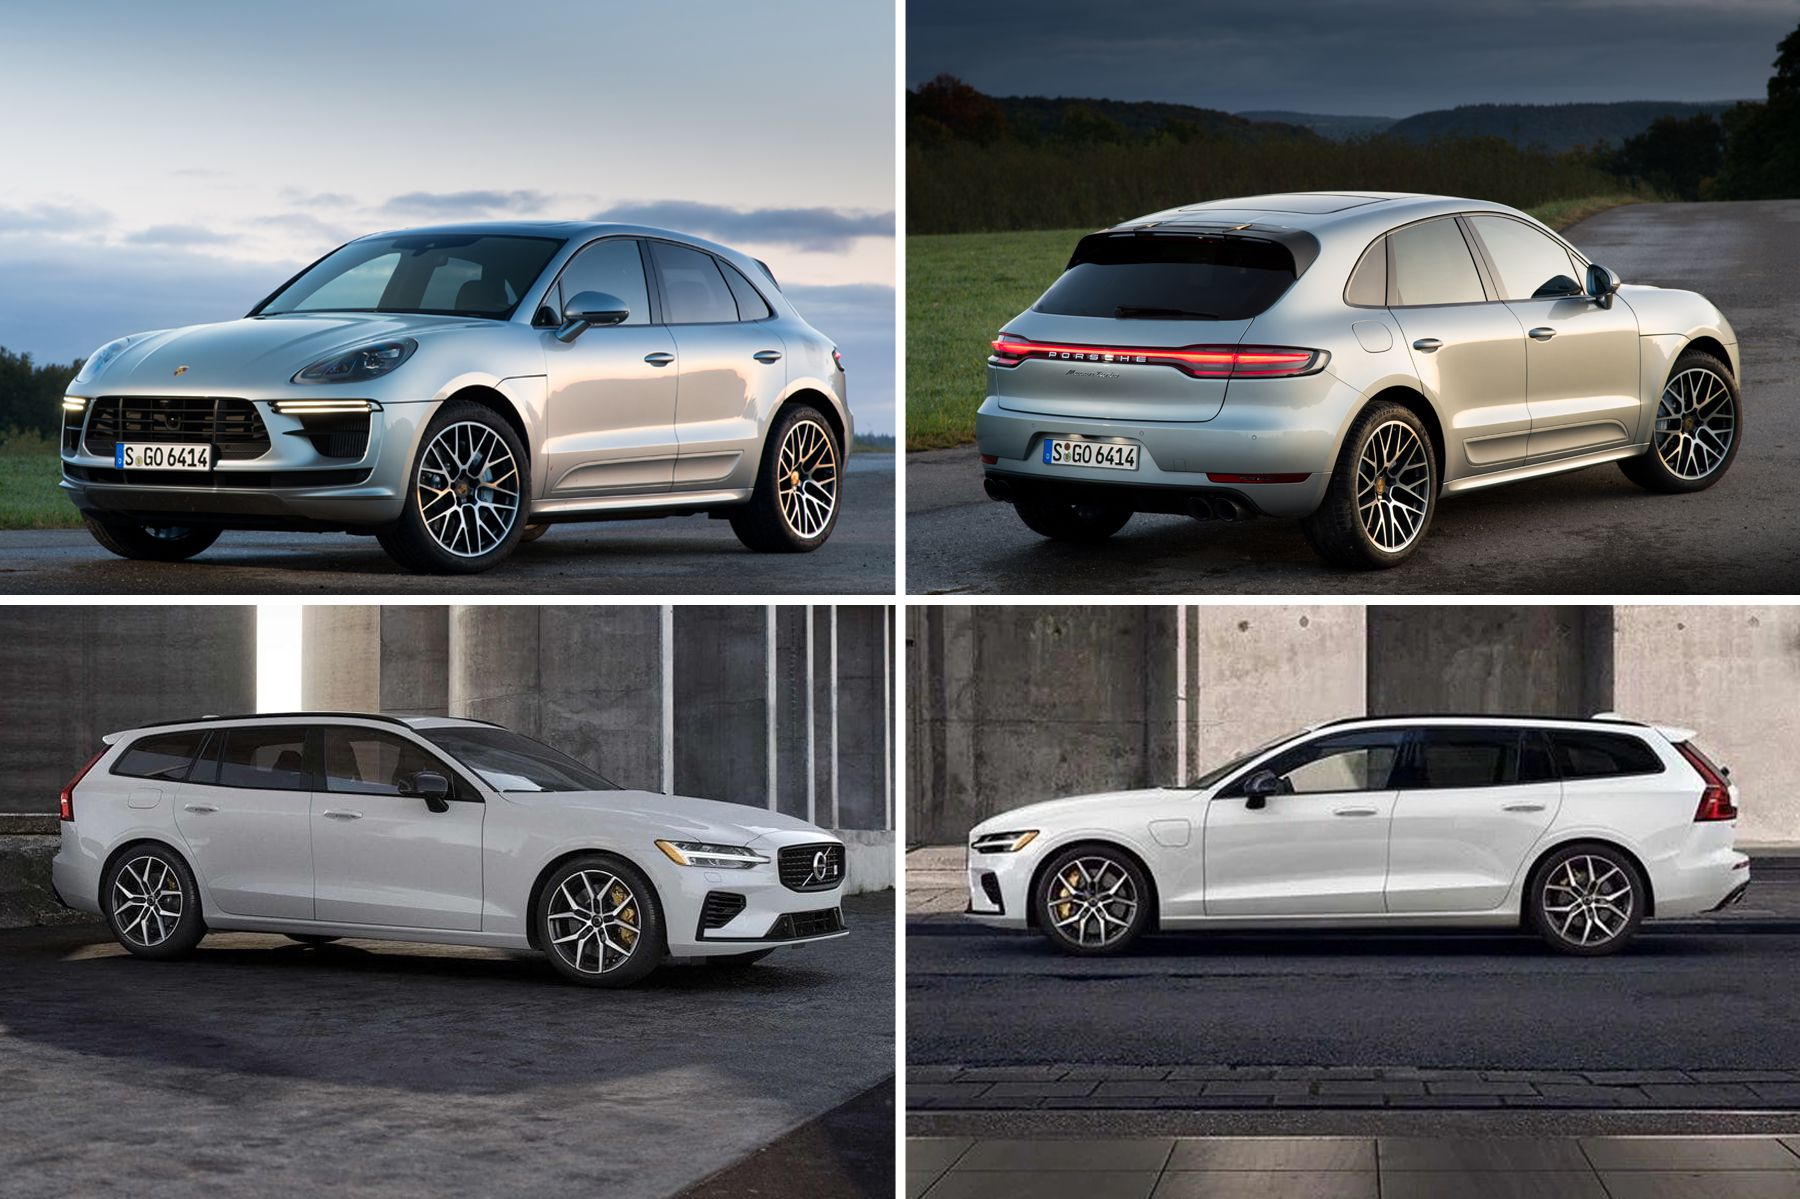 2020 Porsche Macan Turbo vs. 2020 Volvo V60 T8 Polestar Engineered